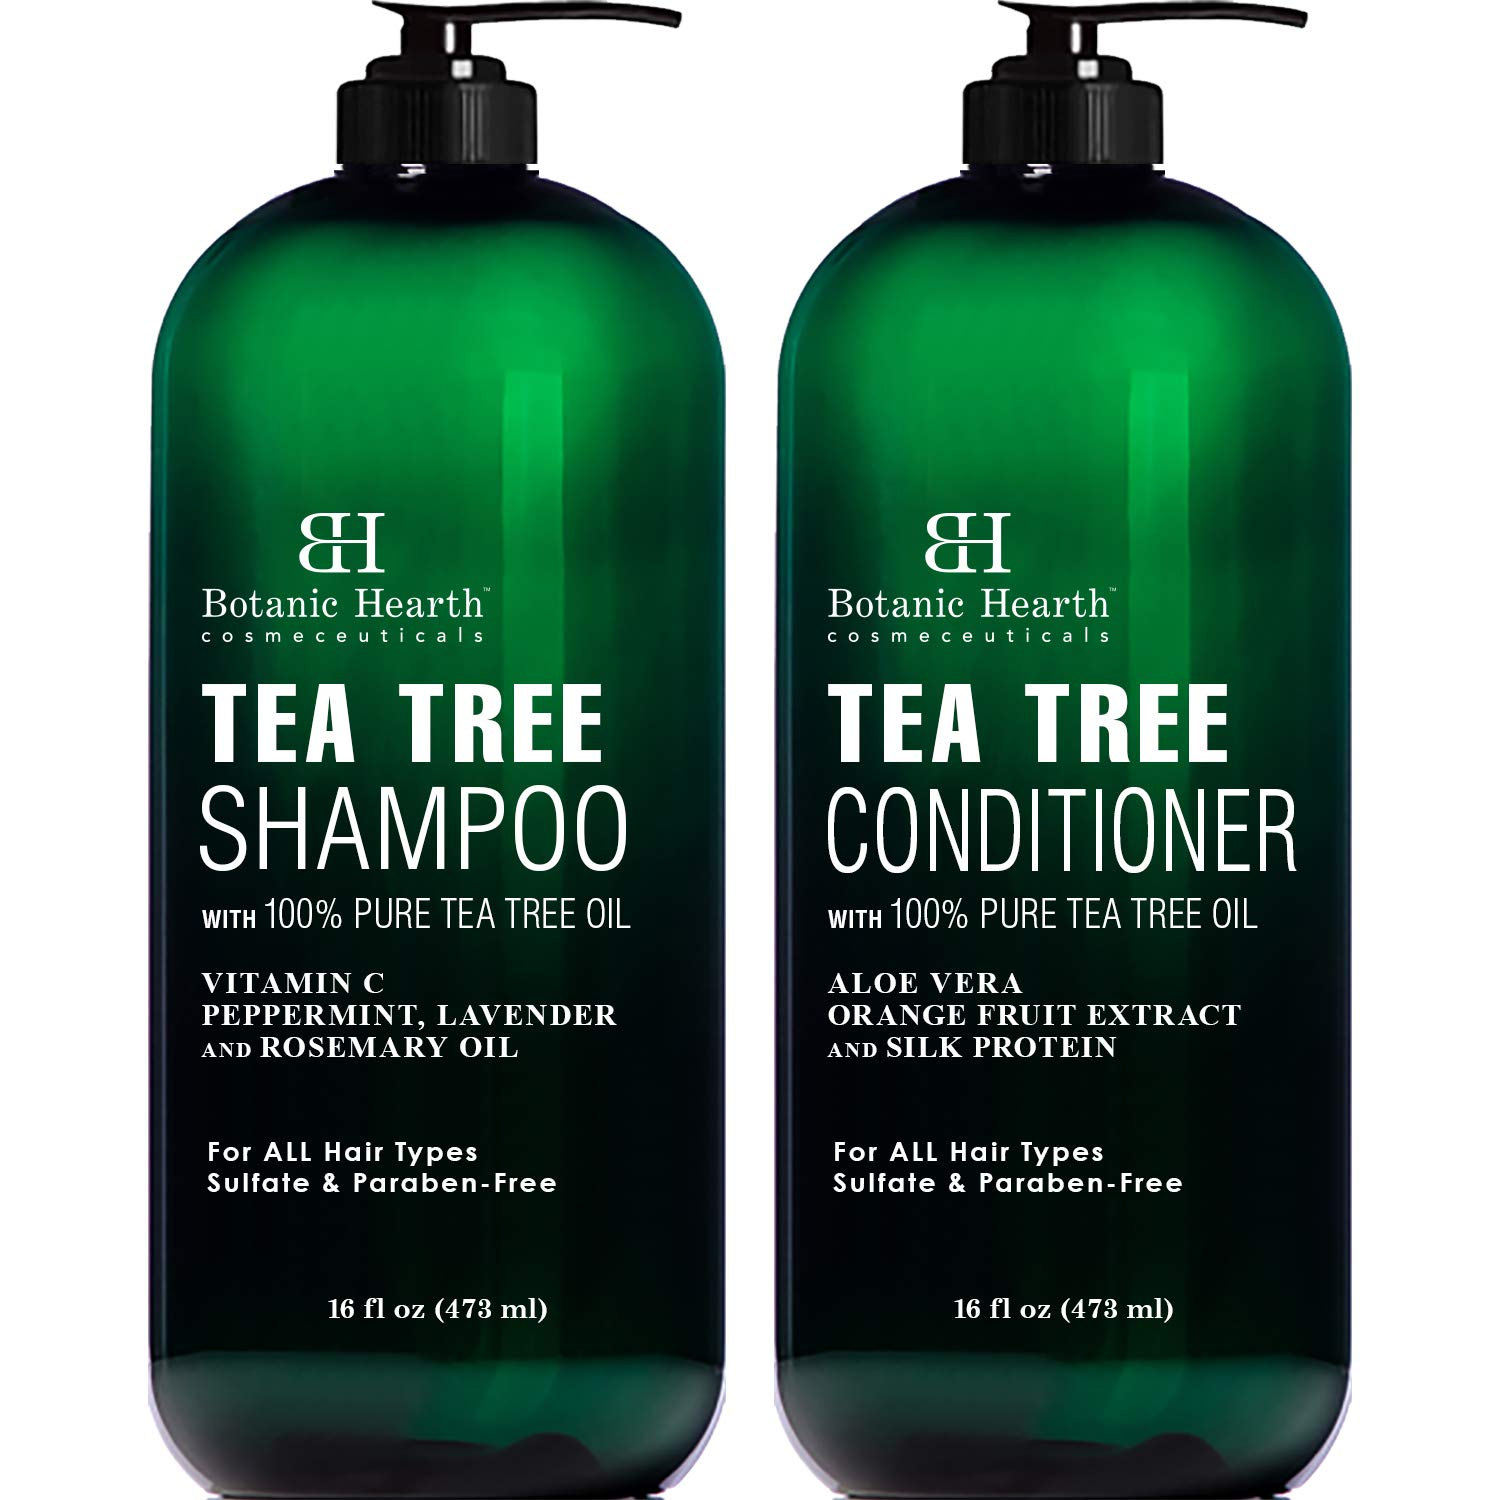 Botanic Hearth Tea Tree Shampoo and Conditioner Set - with 100% Pure Tea Tree Oil, for Itchy and Dry Scalp, Sulfate Free, Paraben Free - for Men and Women - 2 bottles 16 fl oz each by Botanic Hearth